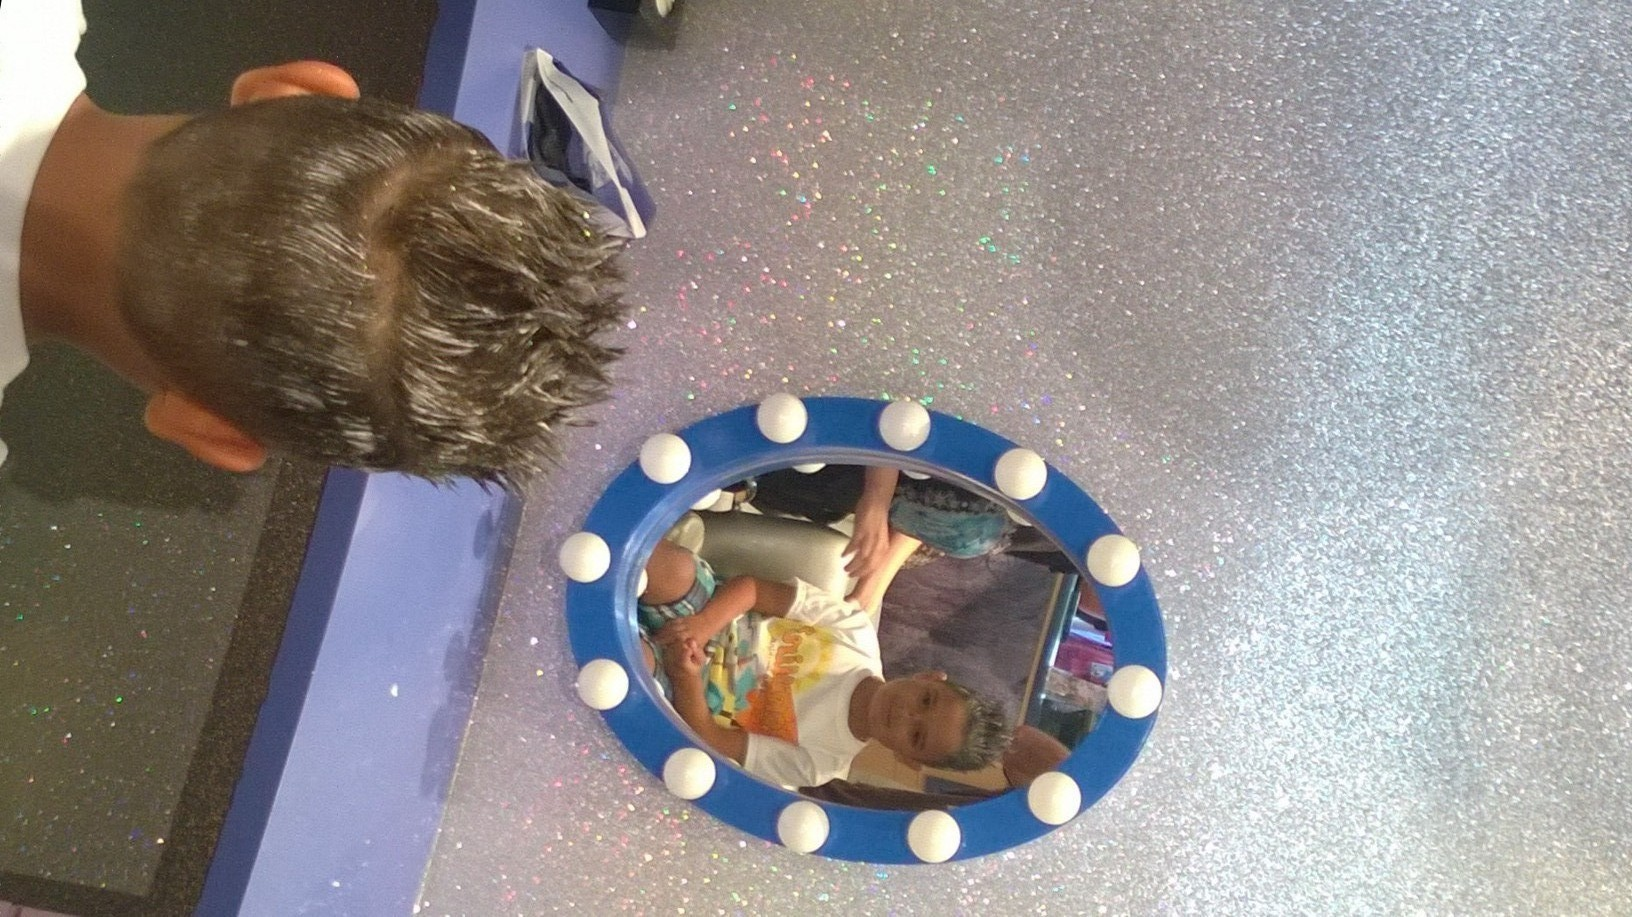 Get A Royal Frozen Make Over At Anna And Elsa S Boutique